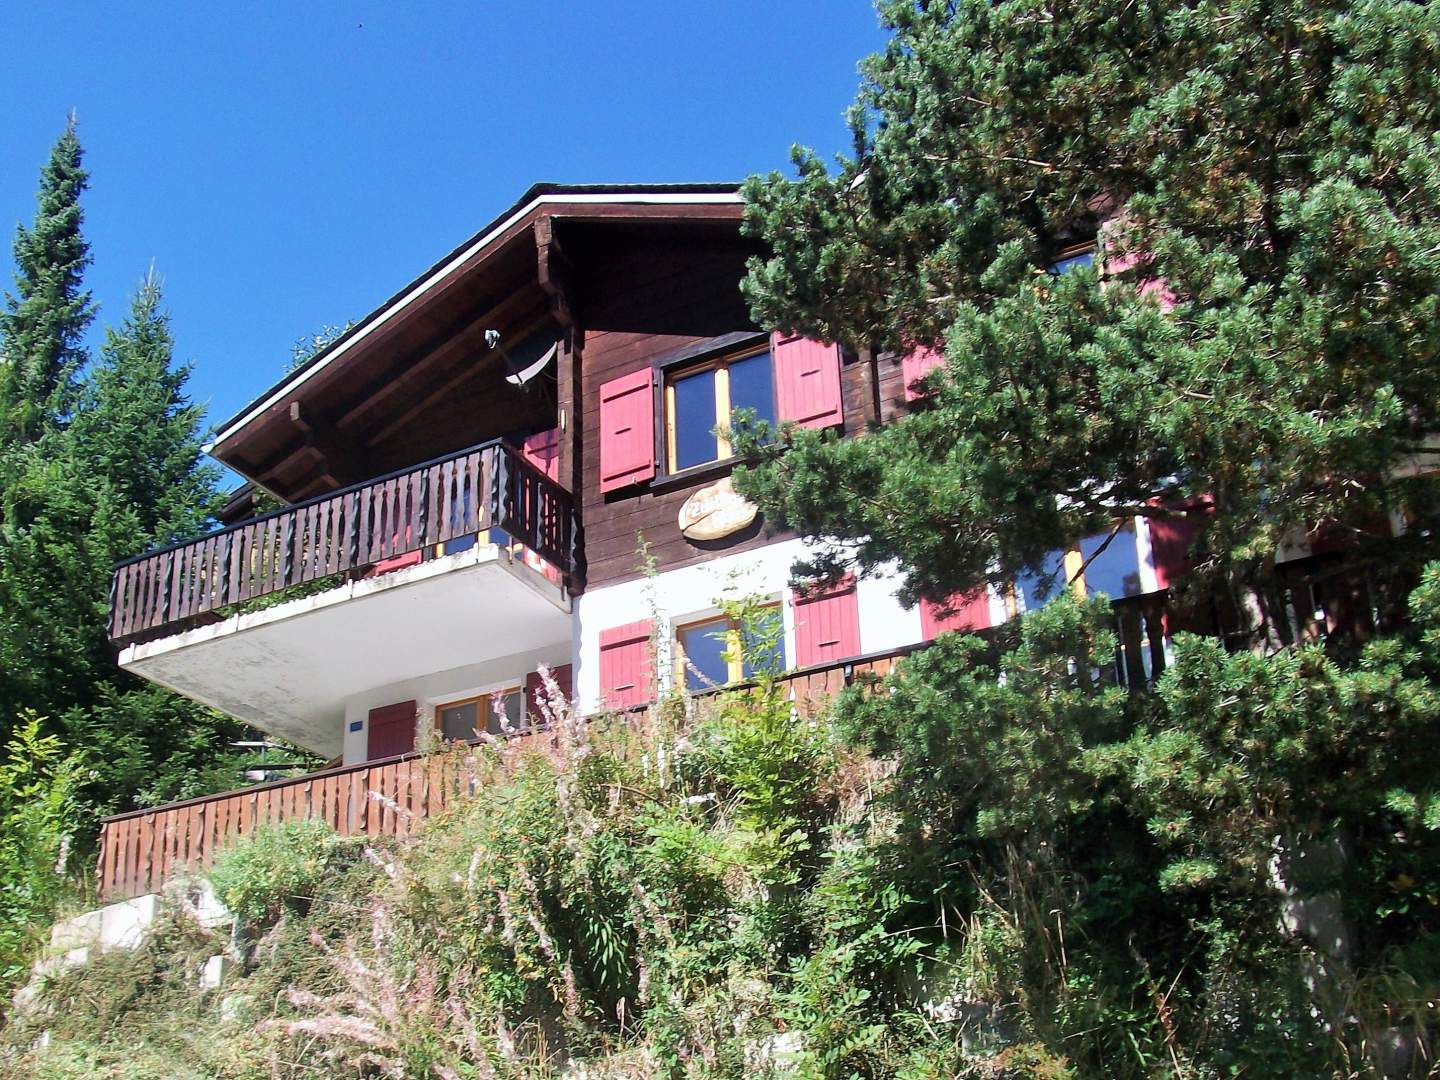 Chalet Zwillinghaus